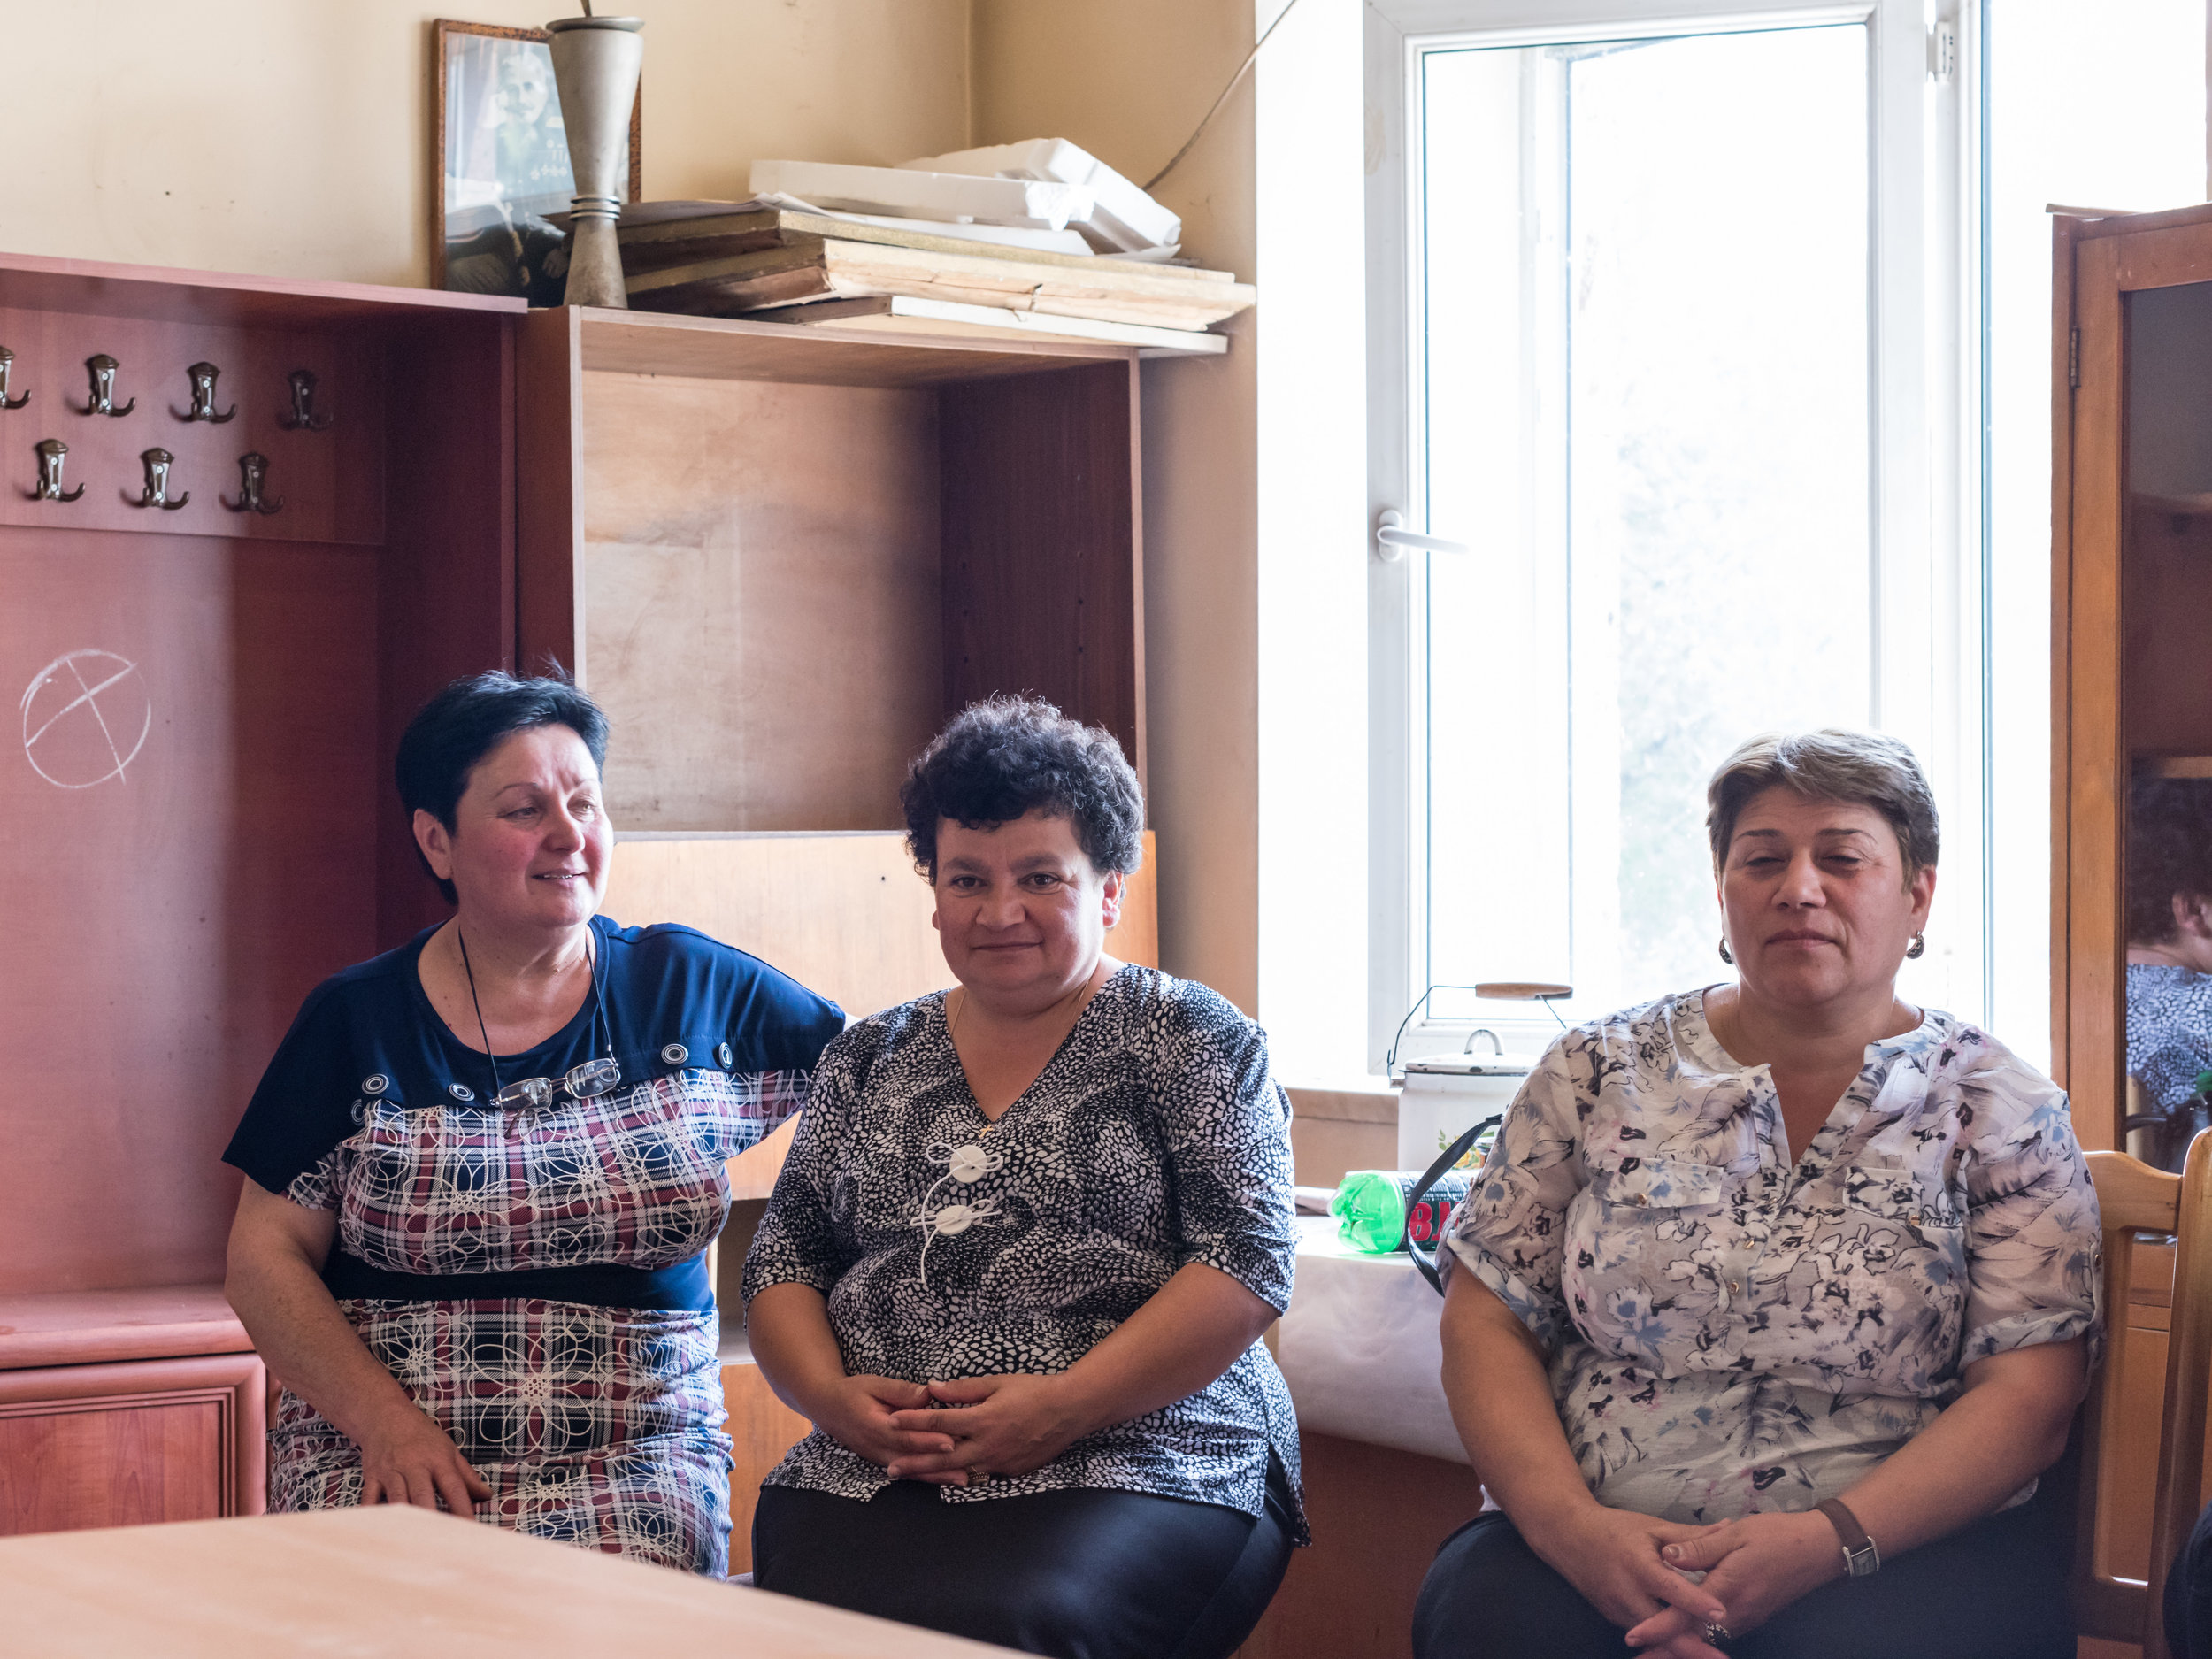 Teachers at the school in Choratan, Armenia, are a dedicated group of strong, professional women working together to improve society through education.